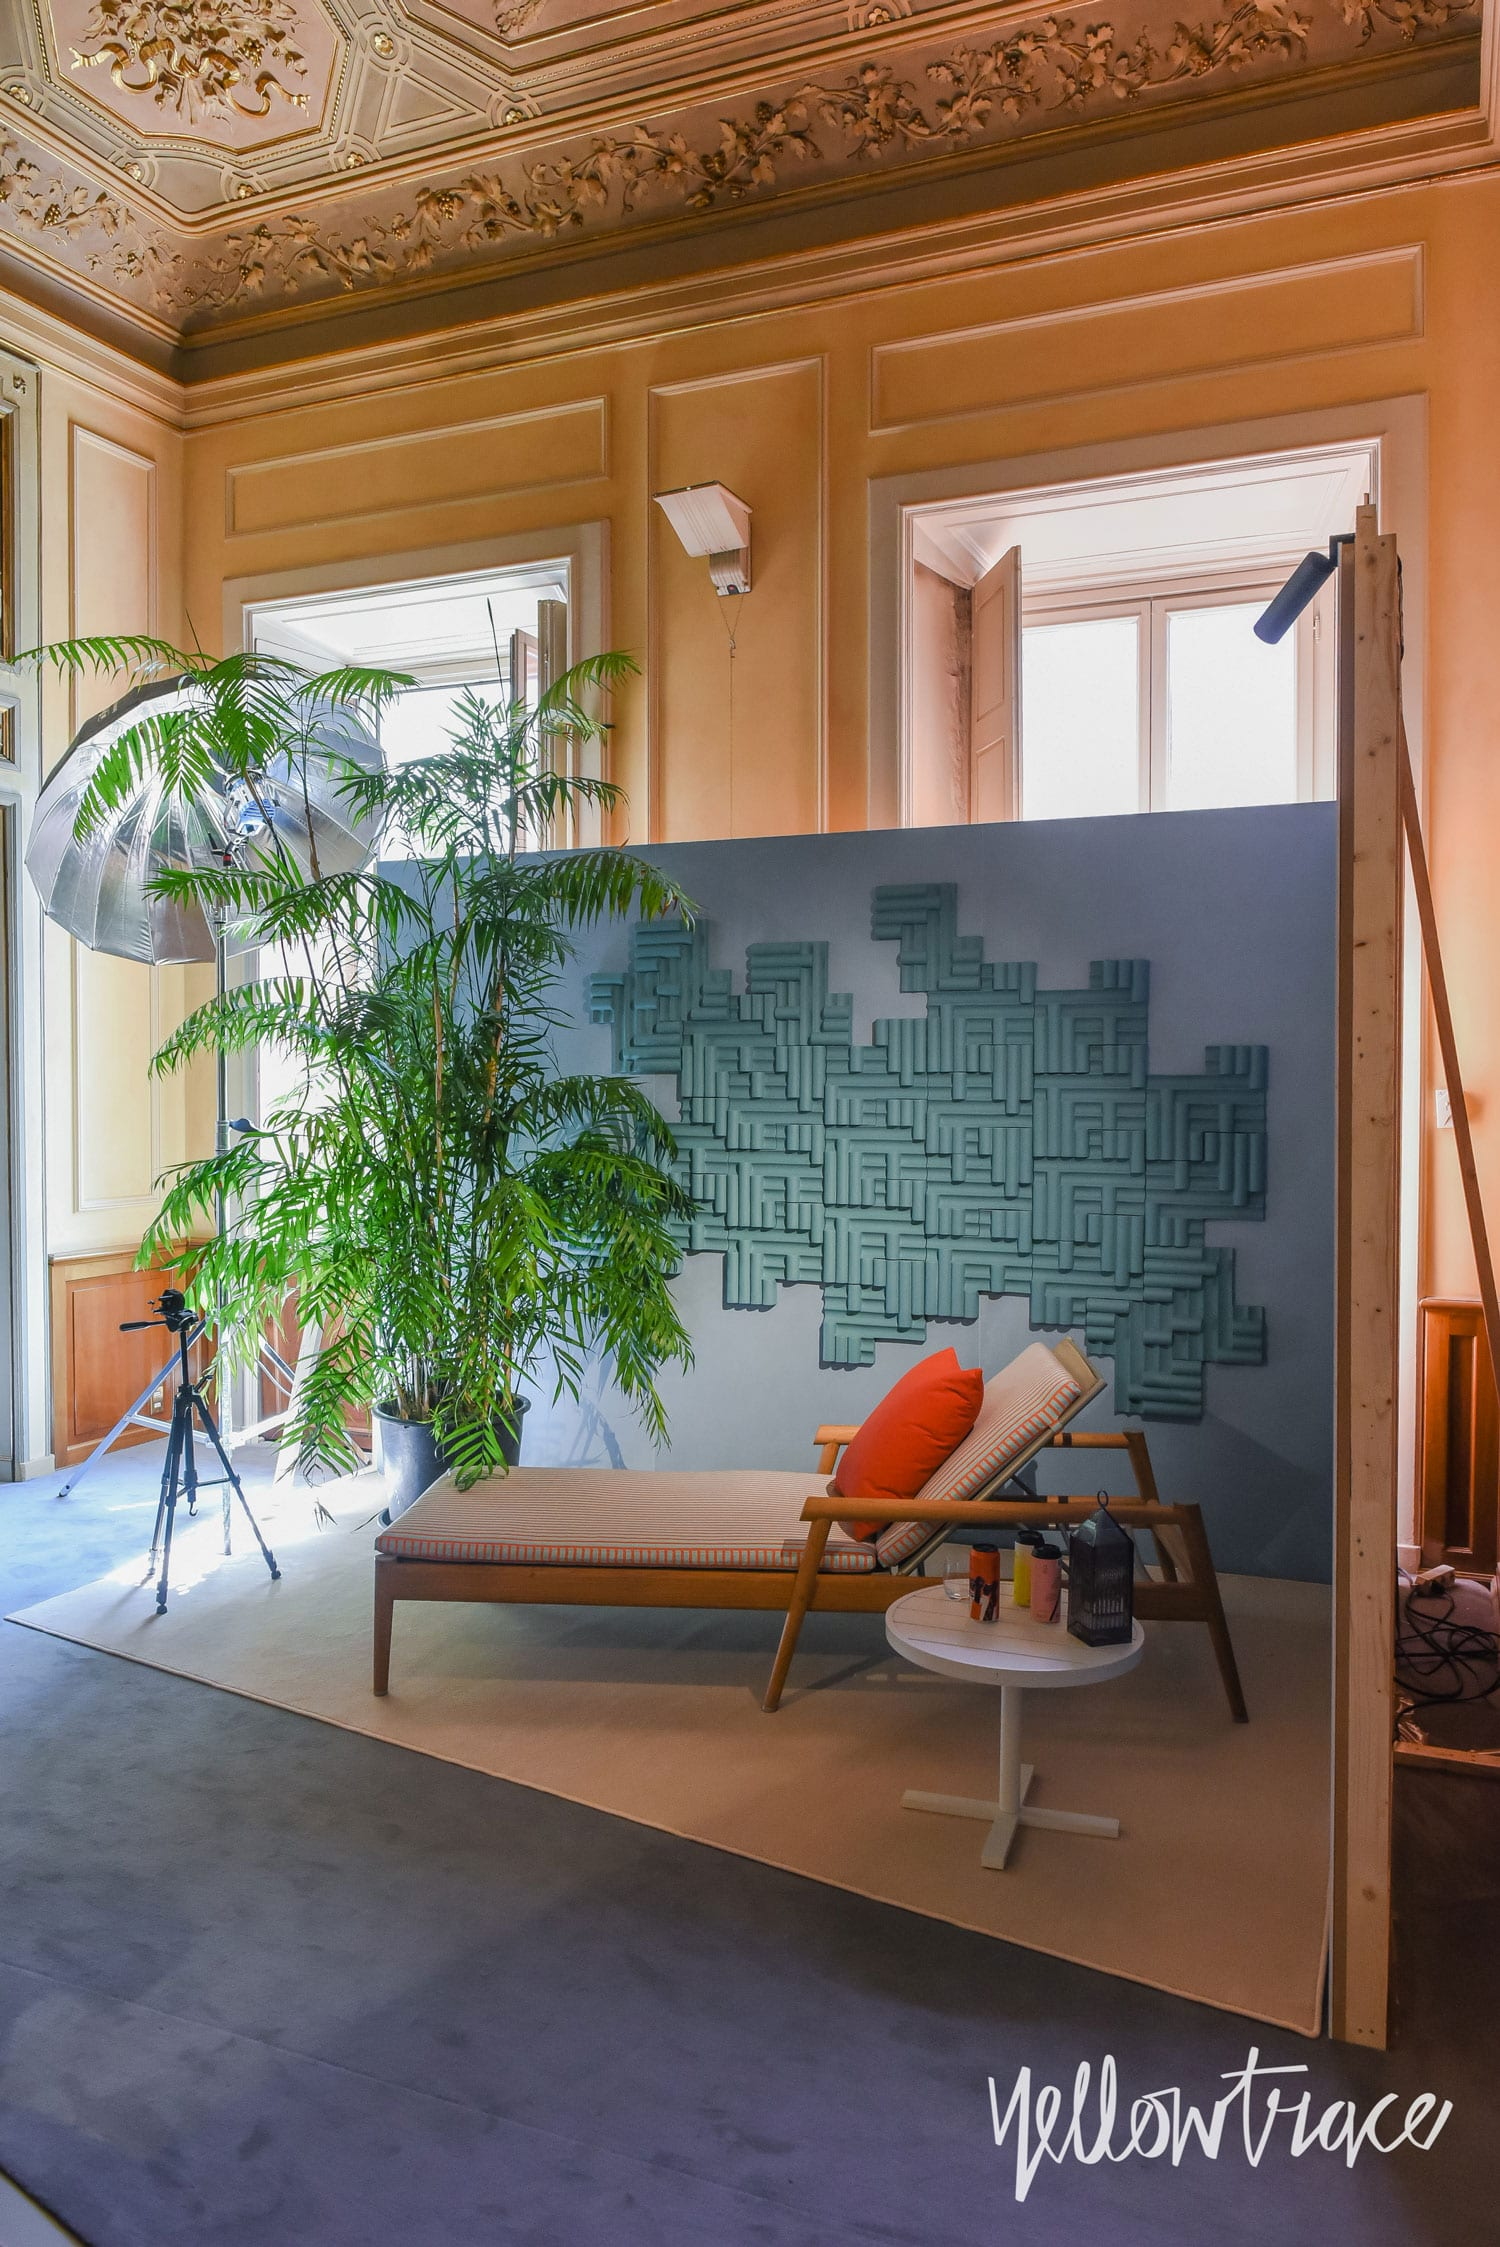 Milan Design Week 2018 Highlights, Elle Décor Italia installation at Palazzo Bovara. Photo © Nick Hughes | #Milantrace2018